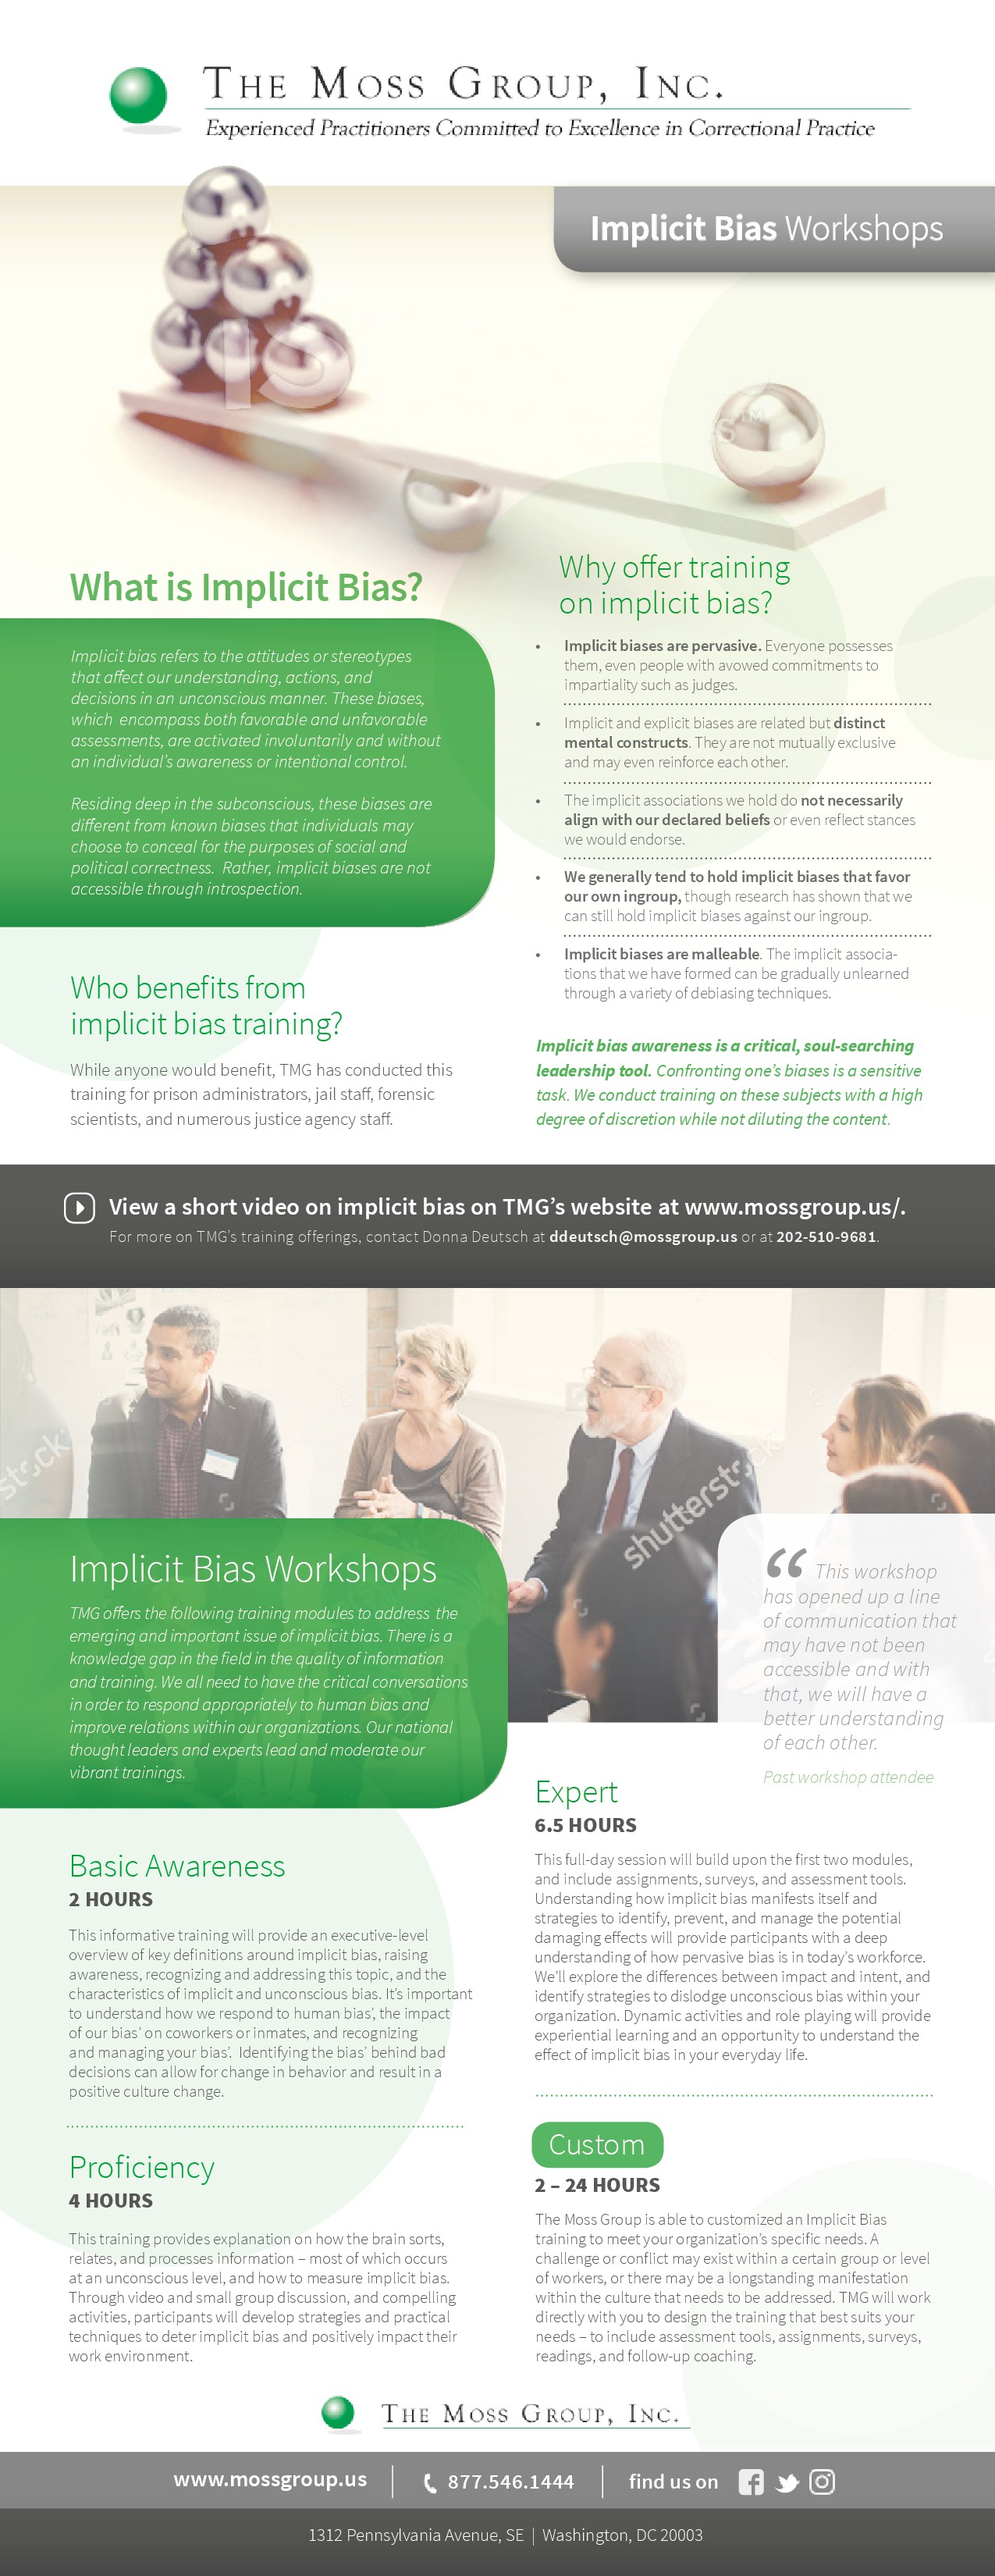 Professional training flyer for TMG on Implicit Bias